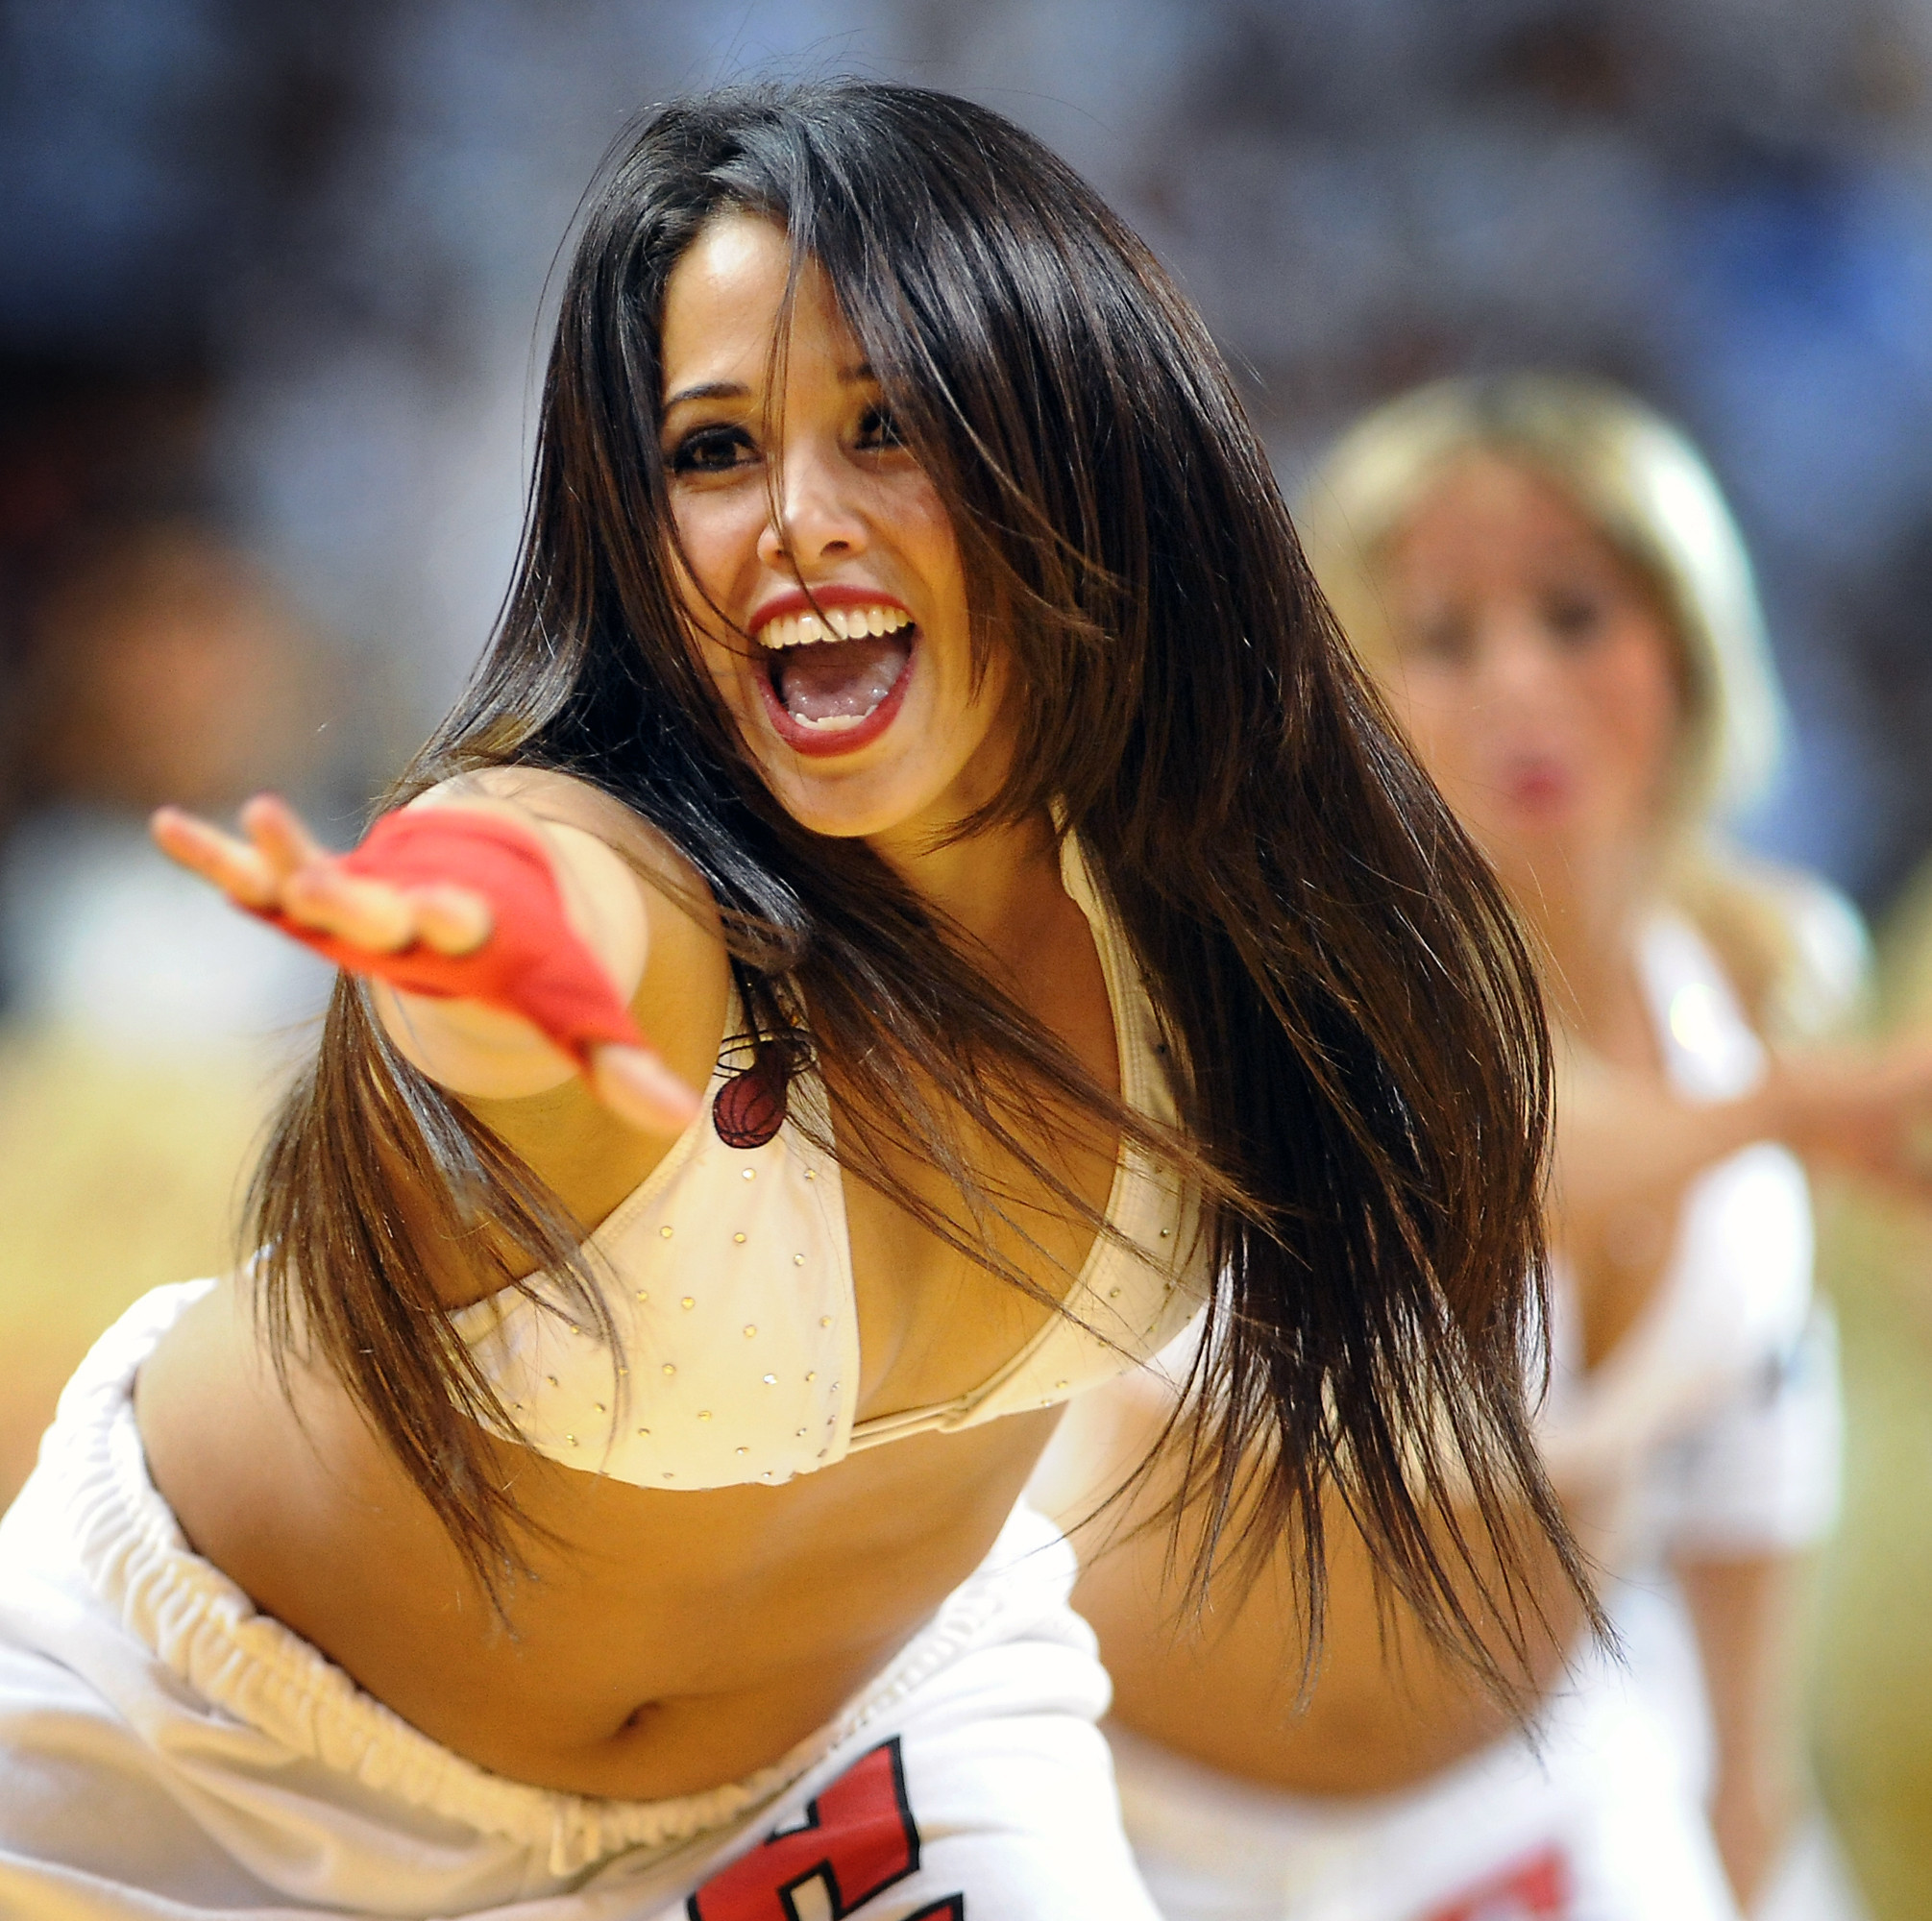 <b>Photos:</b> Miami Heat Dancers in action - Heat